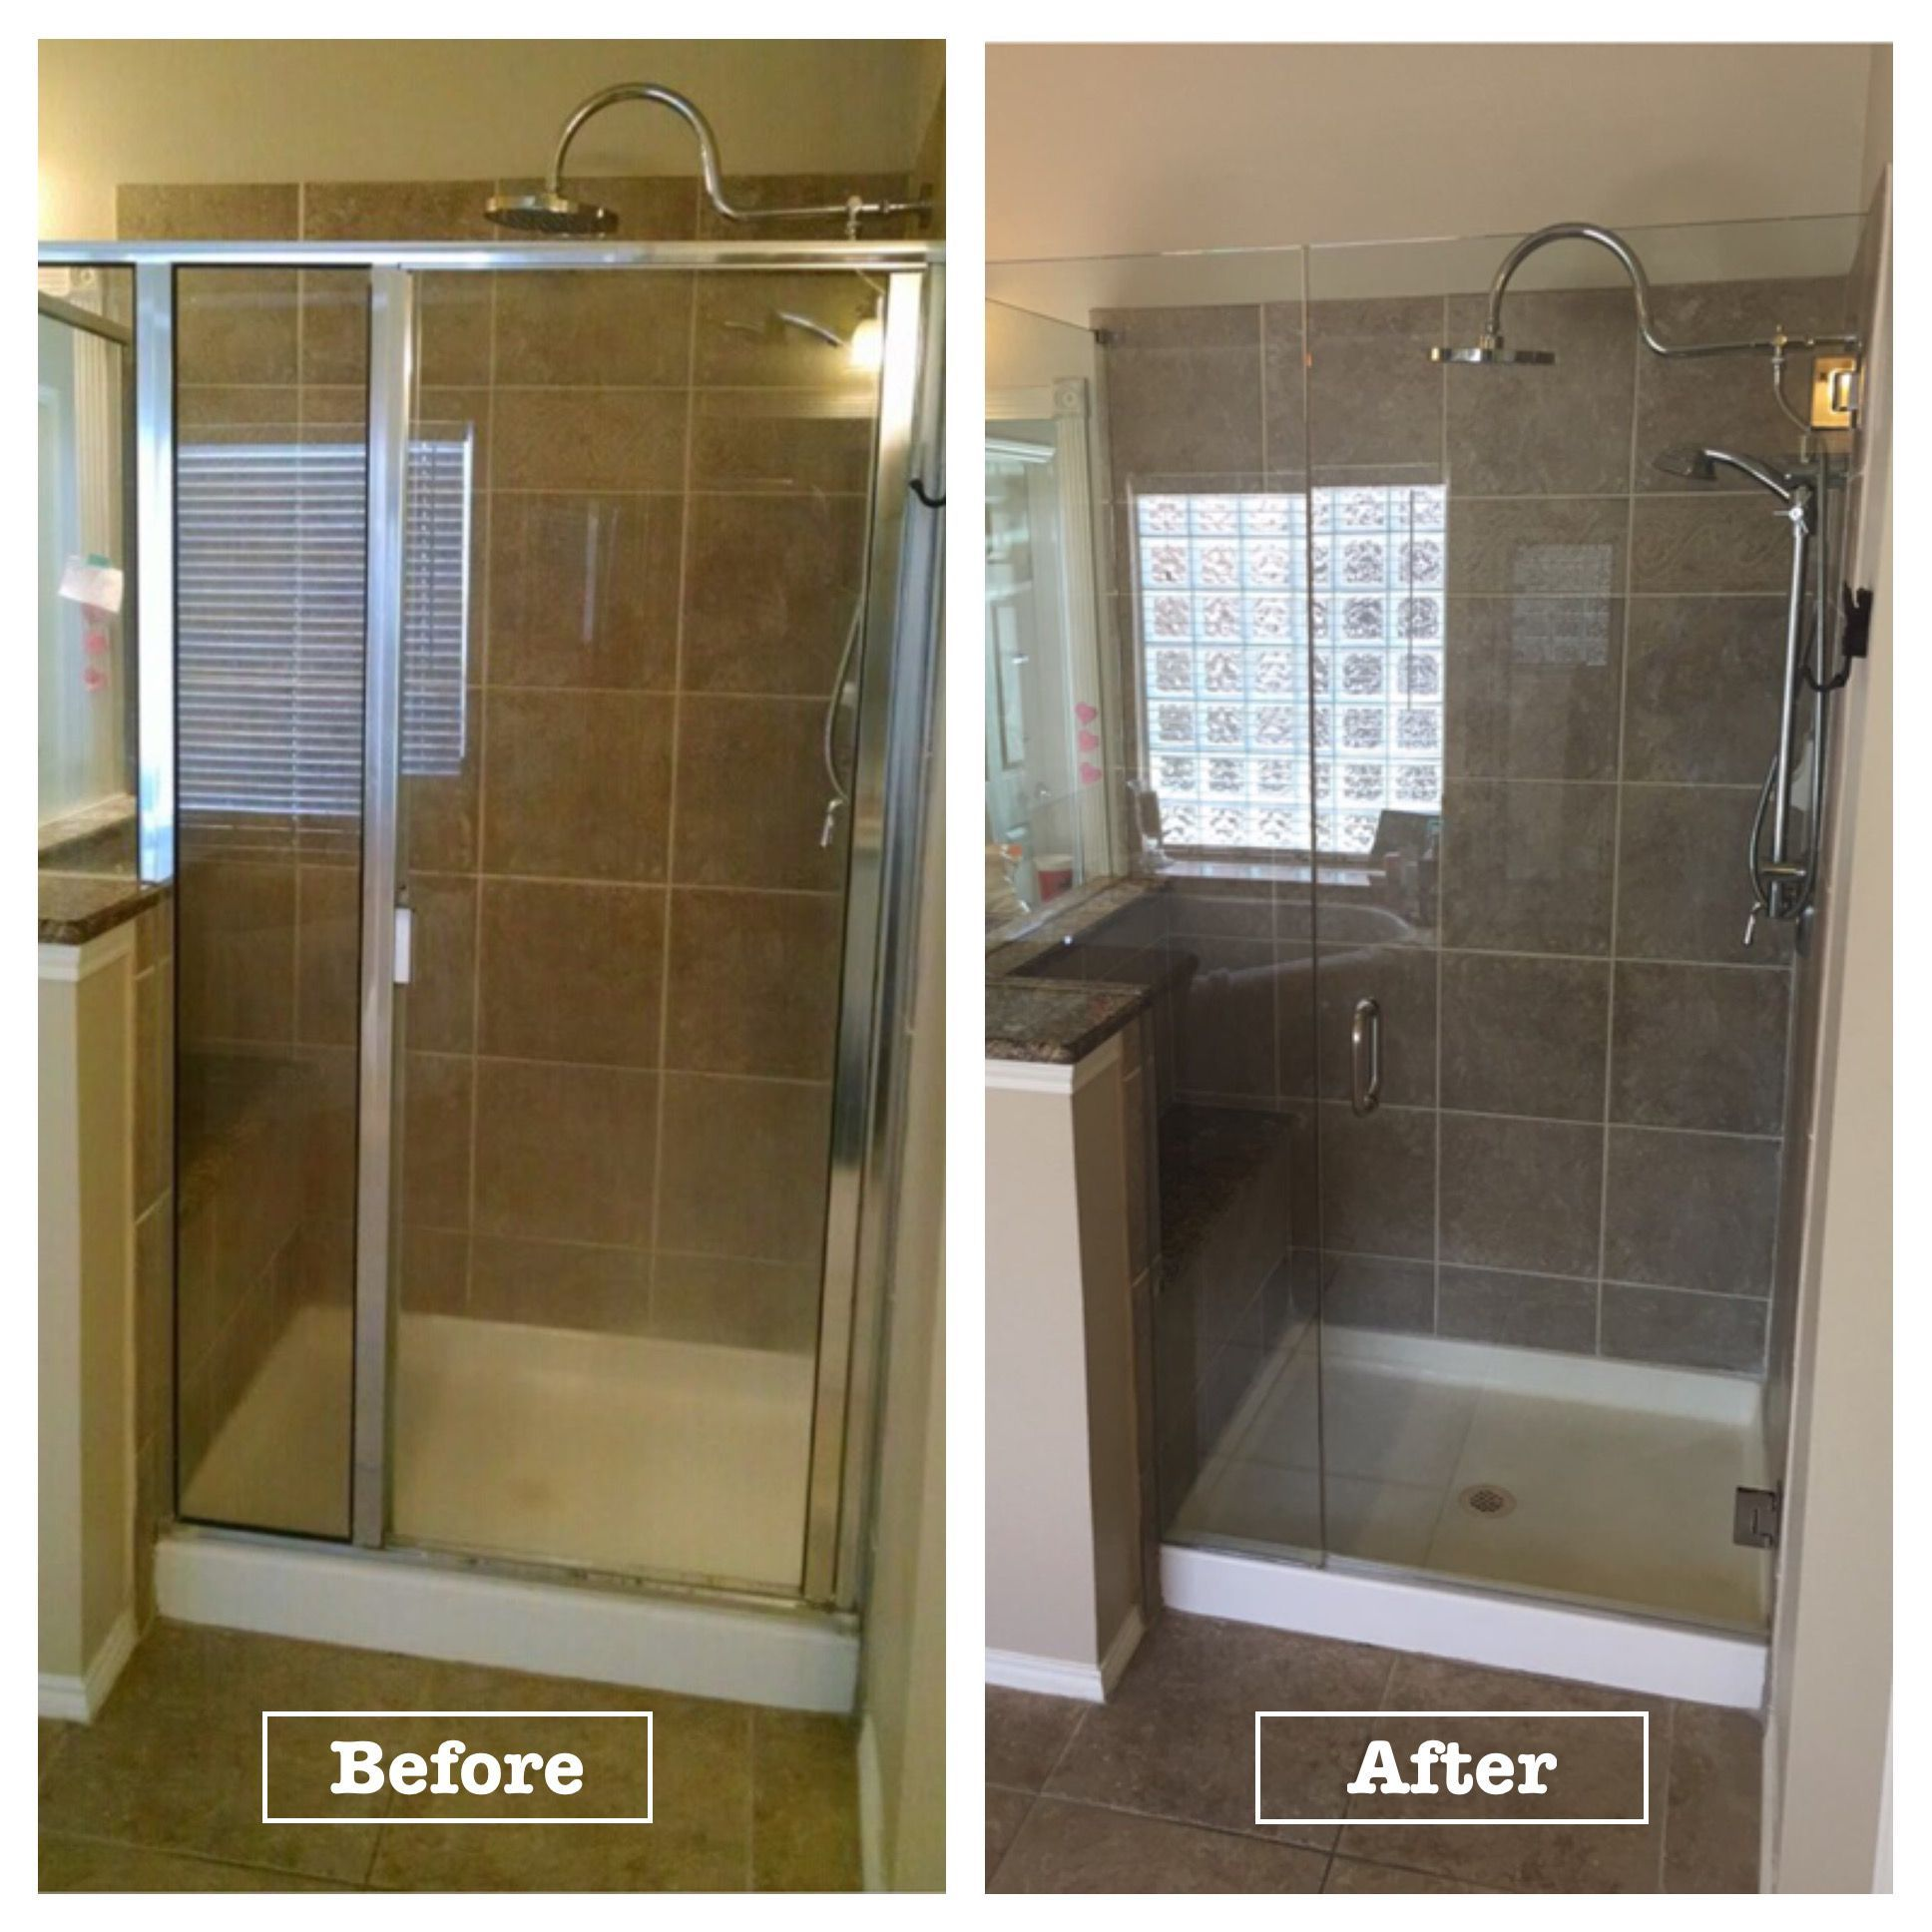 Before And After Images Of A Semi Frameless Shower Changed To A Frameless Shower Enclosure The Frameles Small Shower Remodel Shower Remodel Shower Renovation